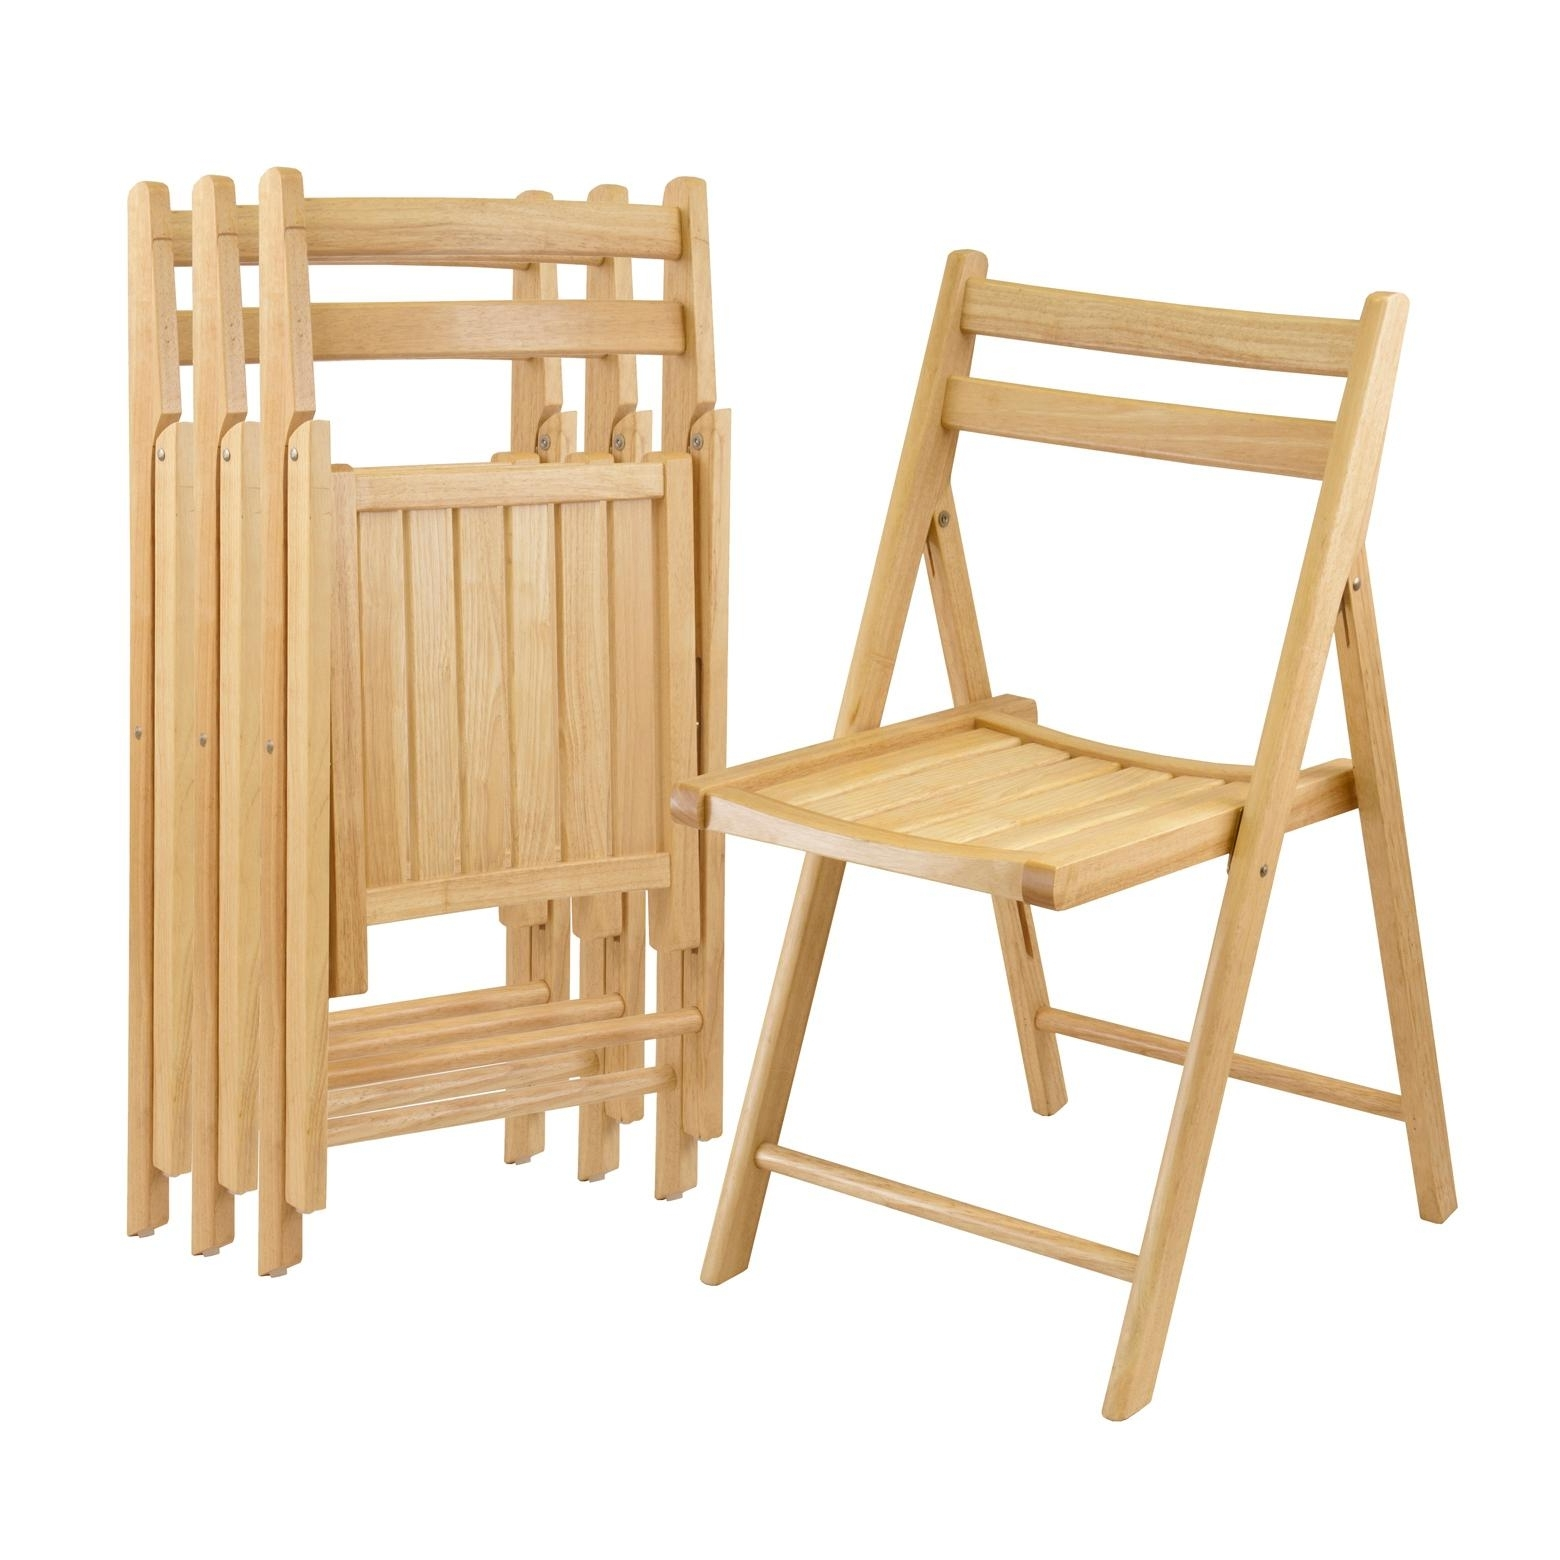 Best And Newest Amazon: Winsome Wood Folding Chairs, Natural Finish, Set Of 4 Inside Dining Tables With Fold Away Chairs (View 2 of 25)